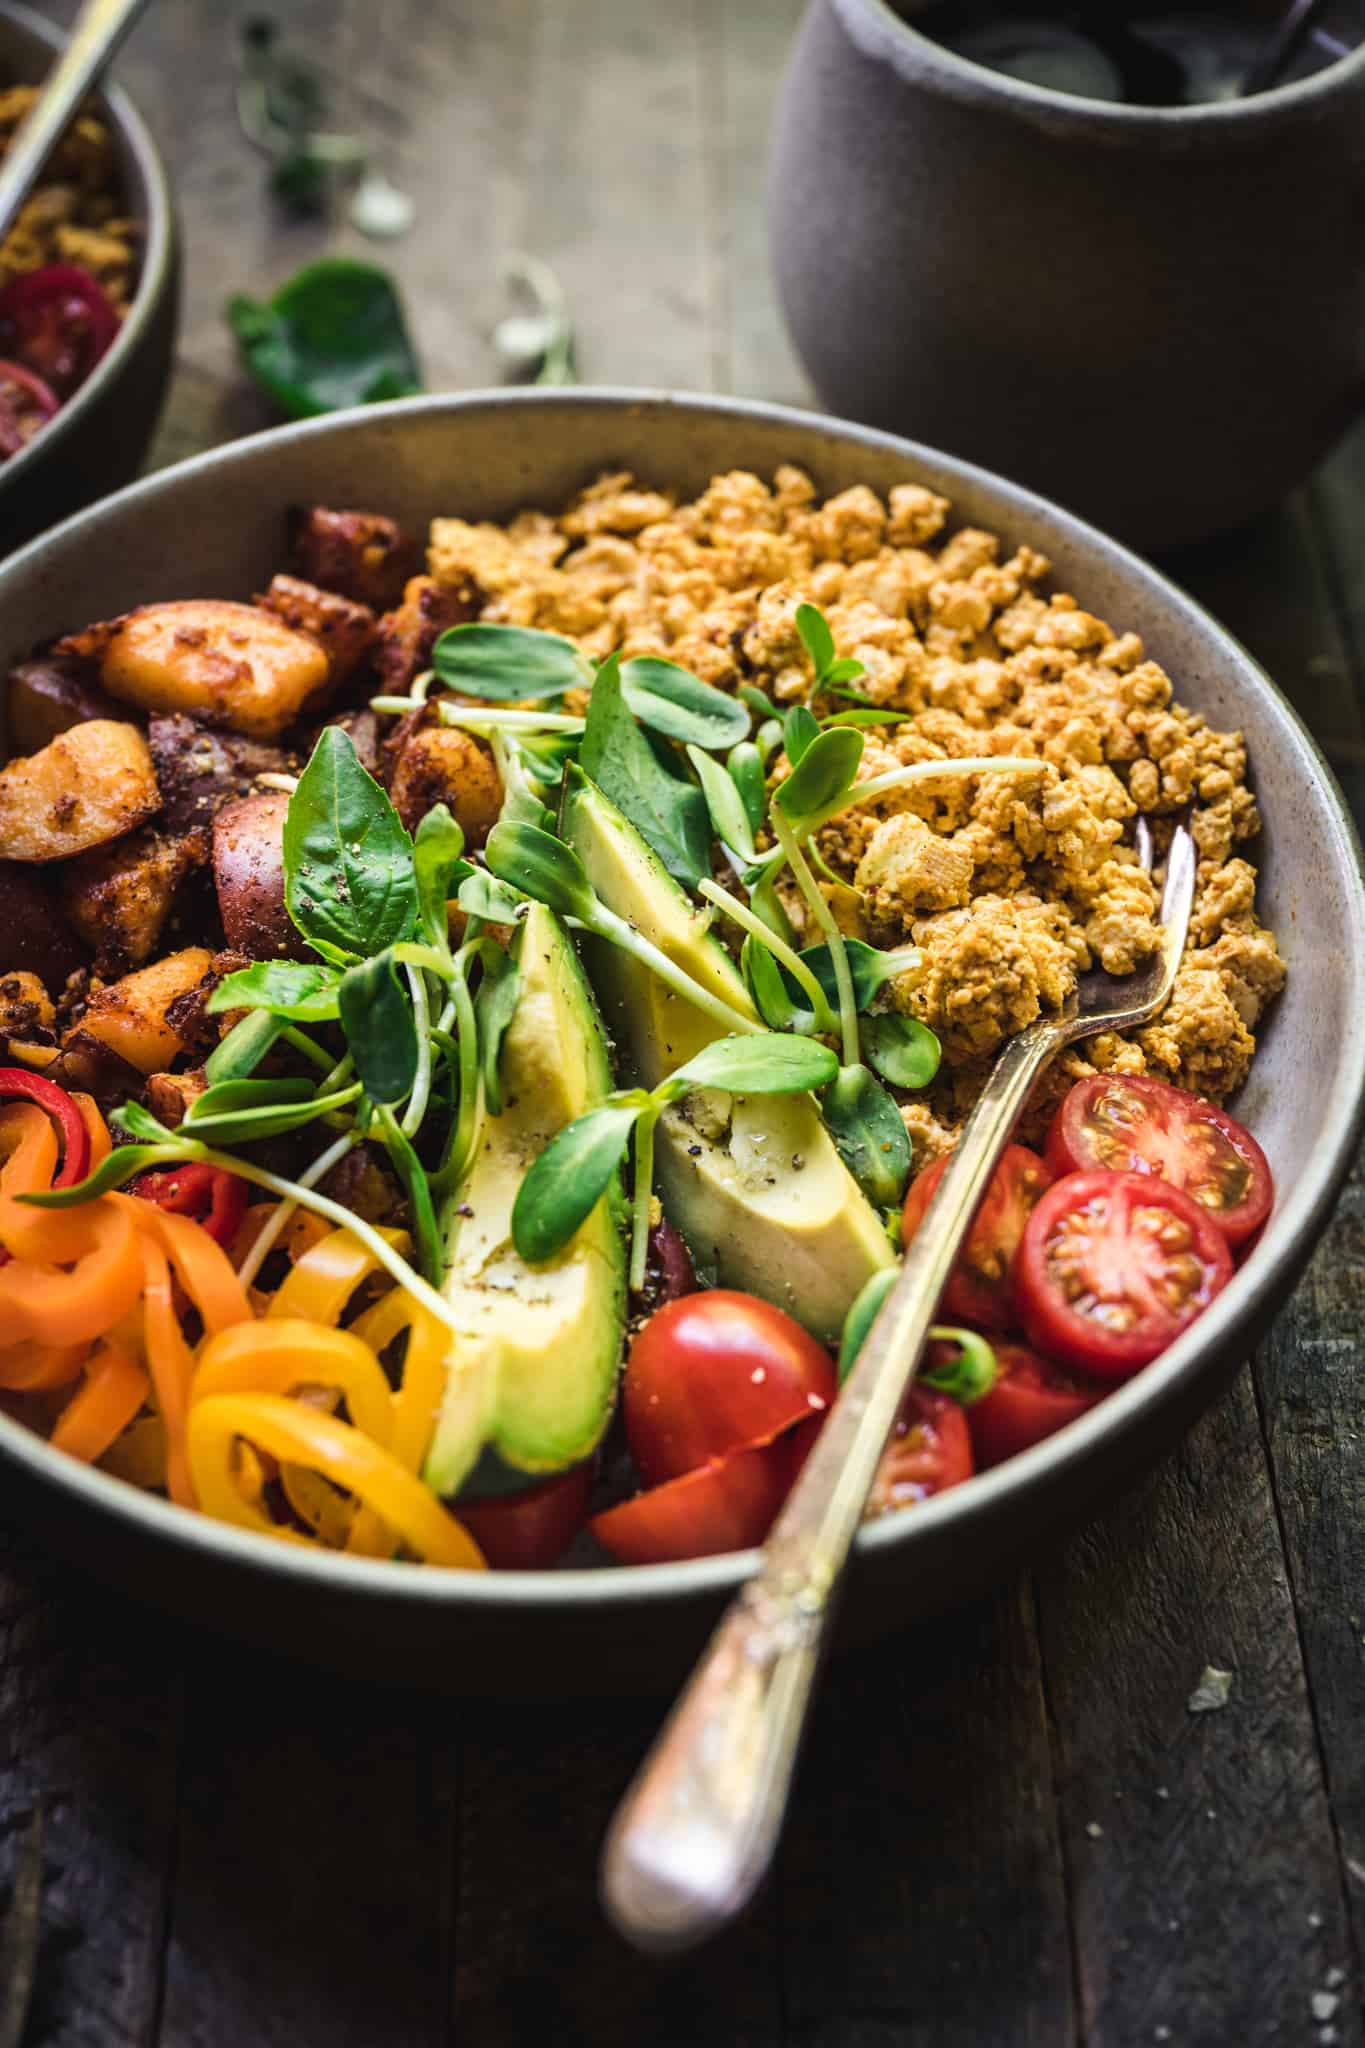 45 degree angle of high protein breakfast bowls with scrambled tofu and spicy potatoes